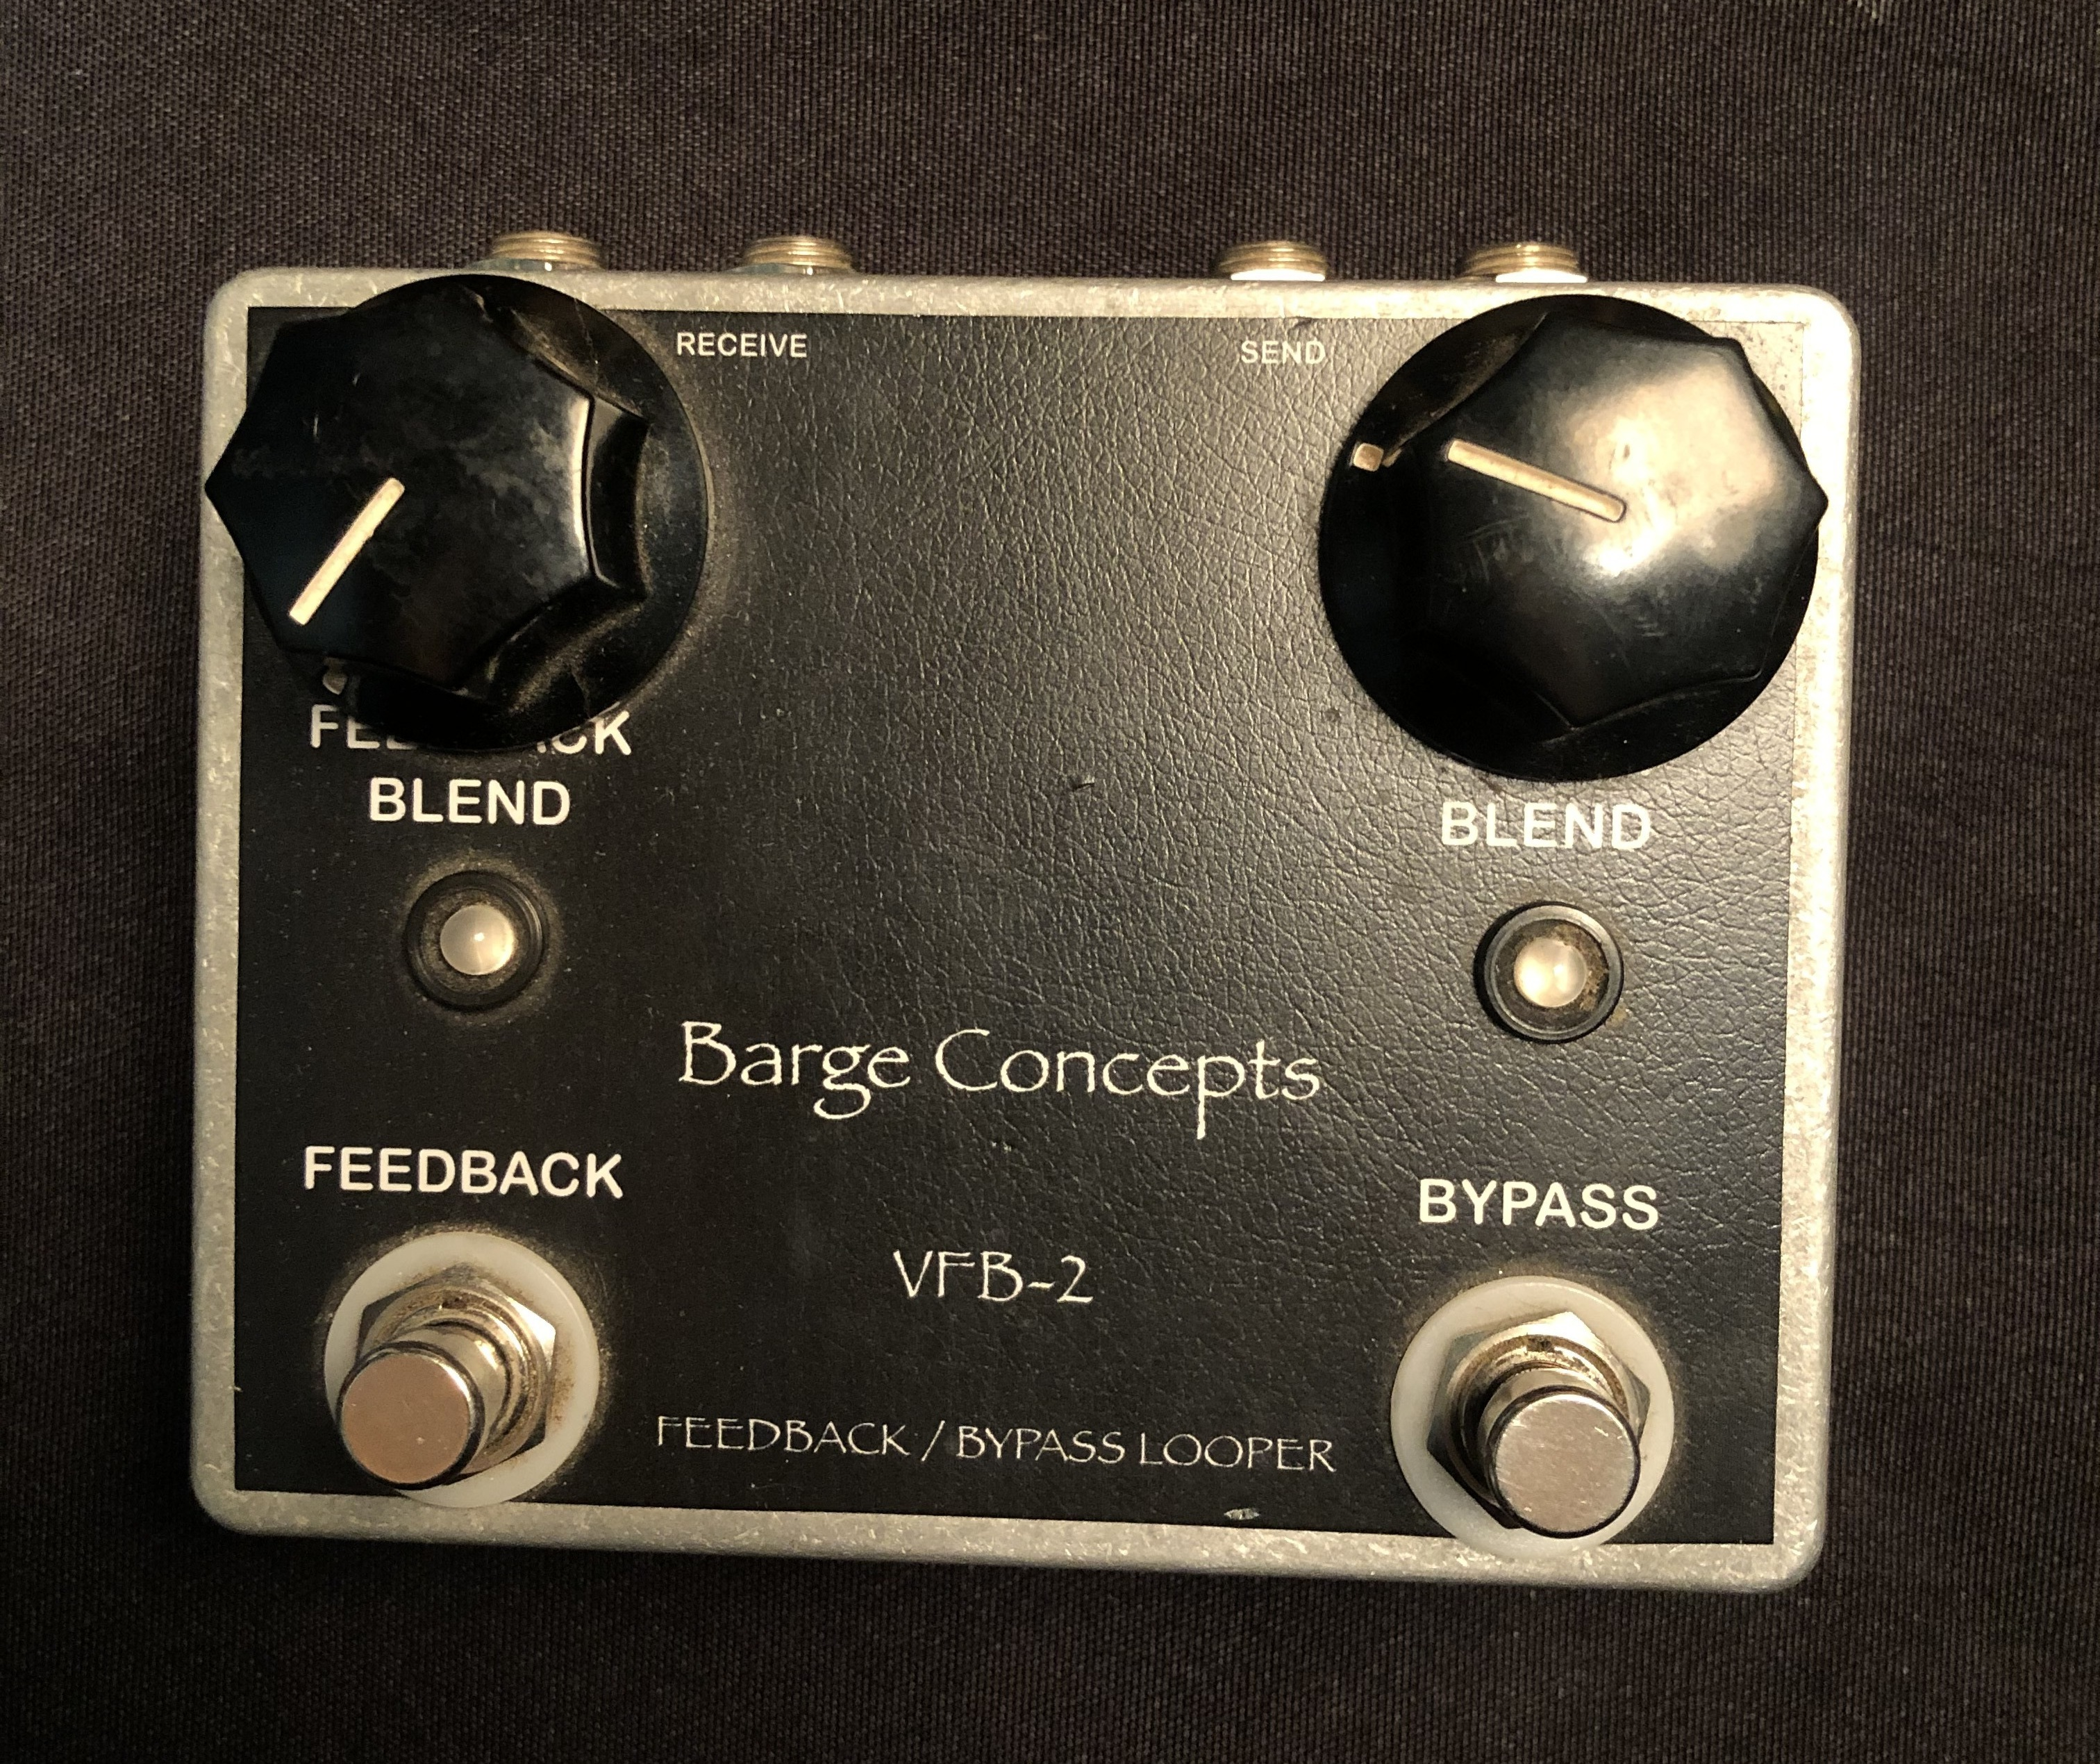 BARGE CONCEPTS - VFB-2 Feedback/Bypass Looper Pedal